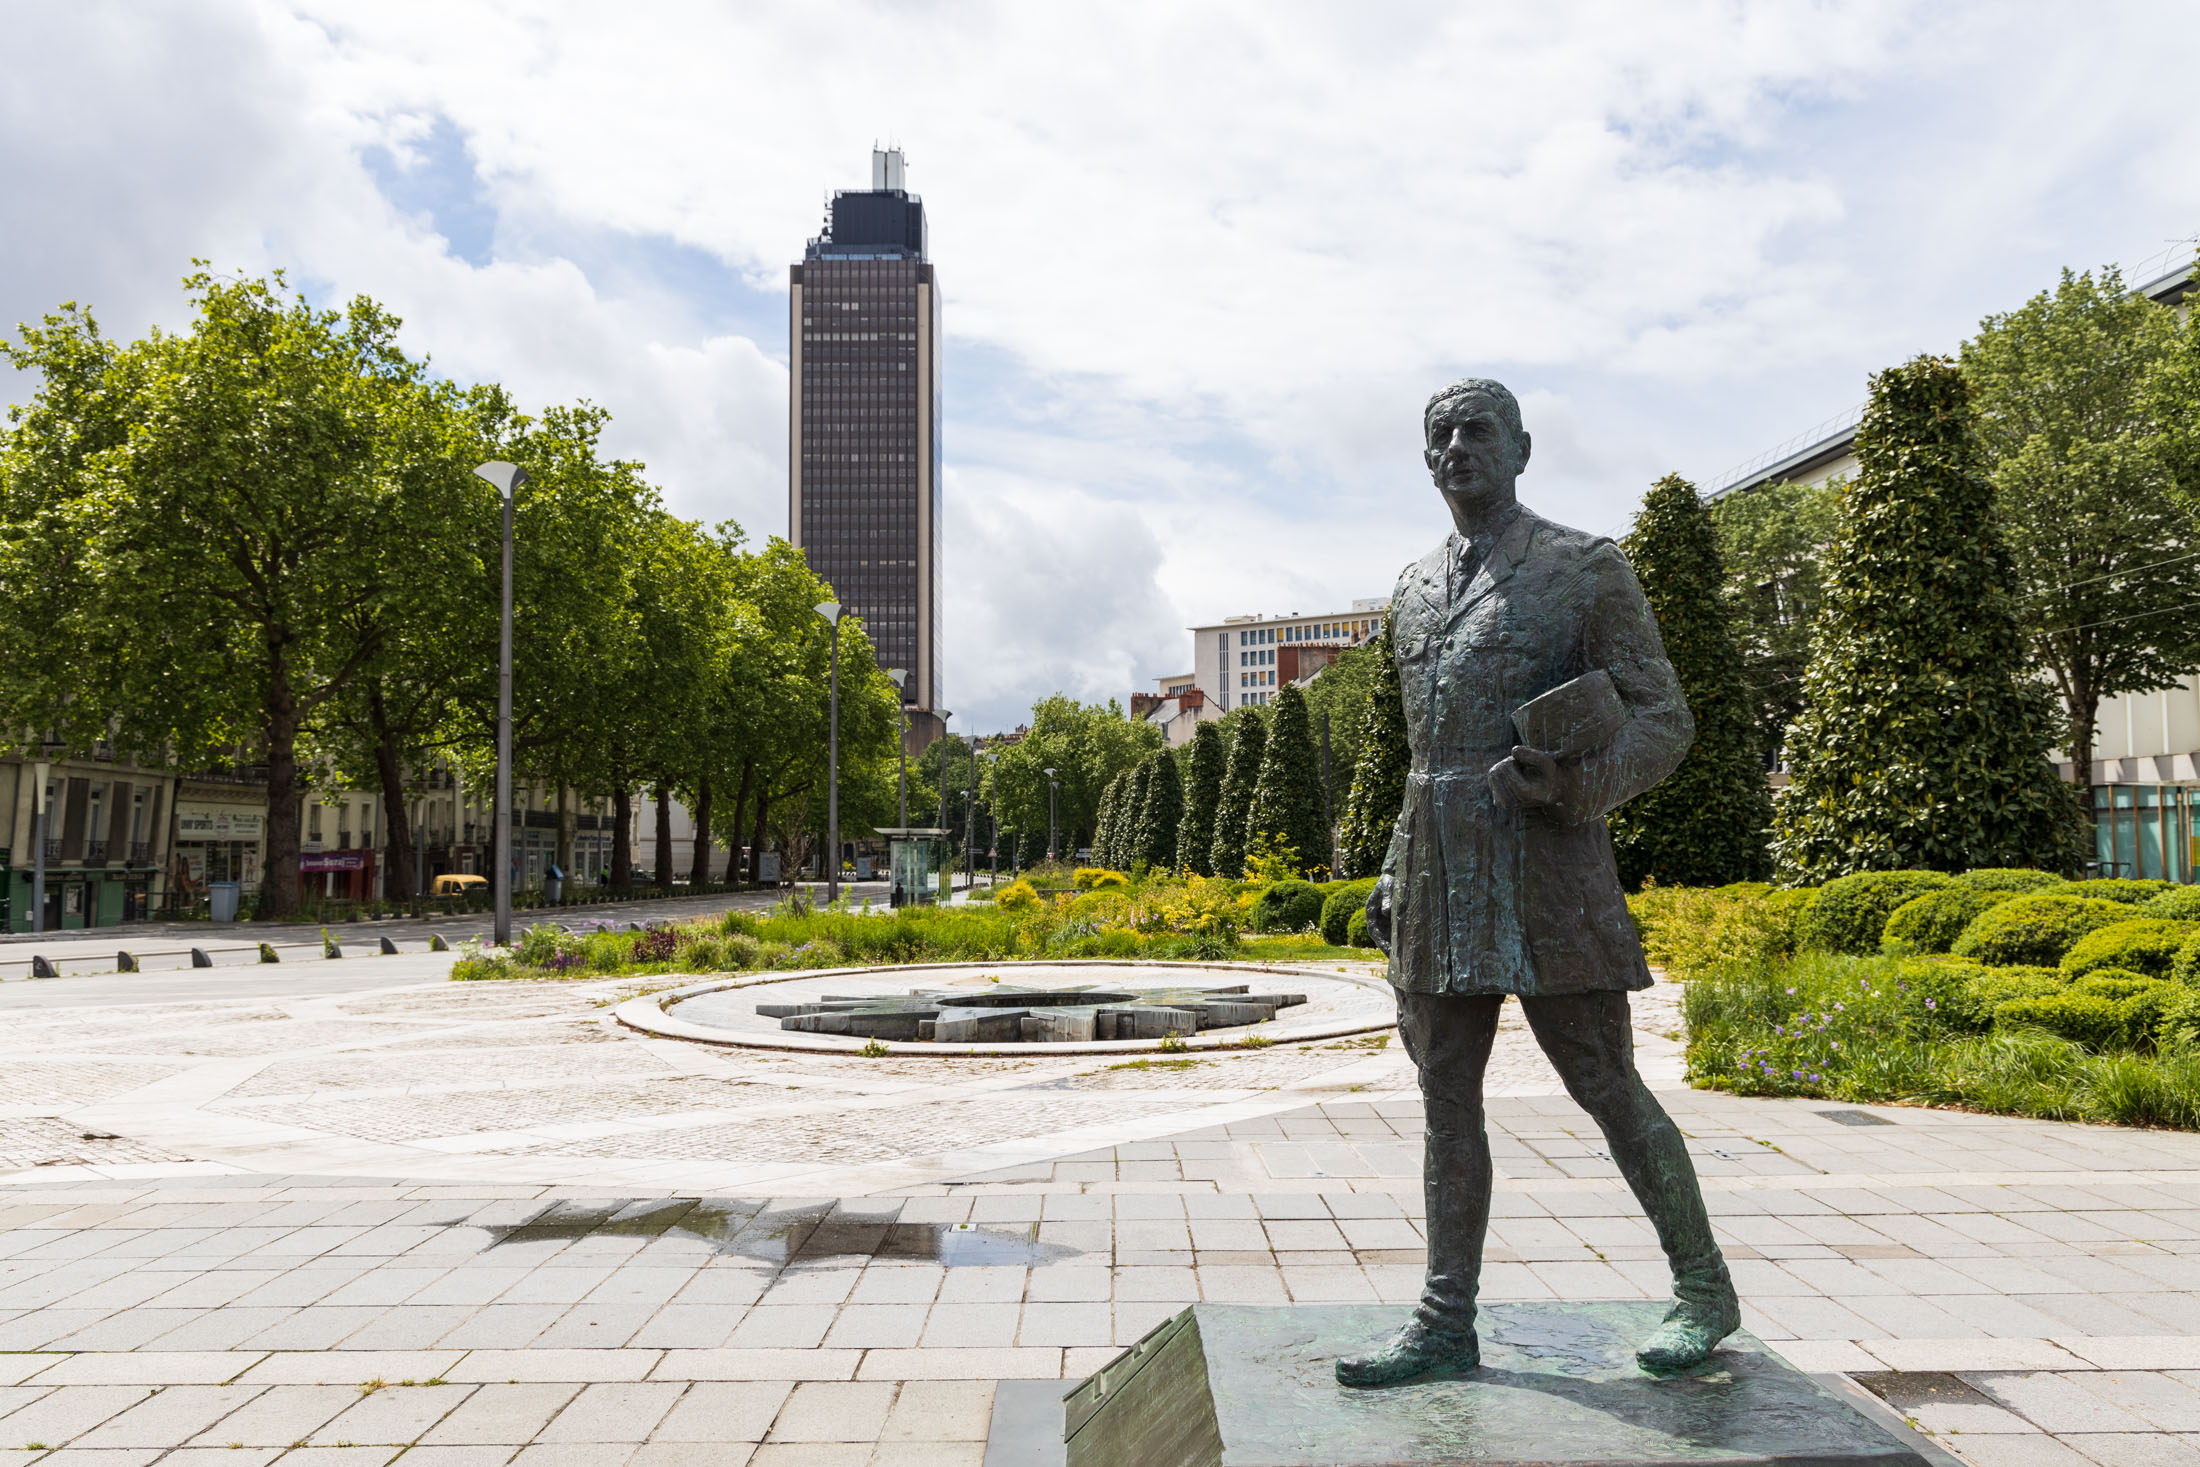 The statue of General de Gaulle on cours des 50 otages in Nantes is one of the few people outside during the confinement. Nantes, France - May 1st 2020.La statue du General de Gaulle cours des 50 otages a Nantes fait partie des rares personnes dehors pendant le confinement.  Nantes, France - 1er Mai 2020.